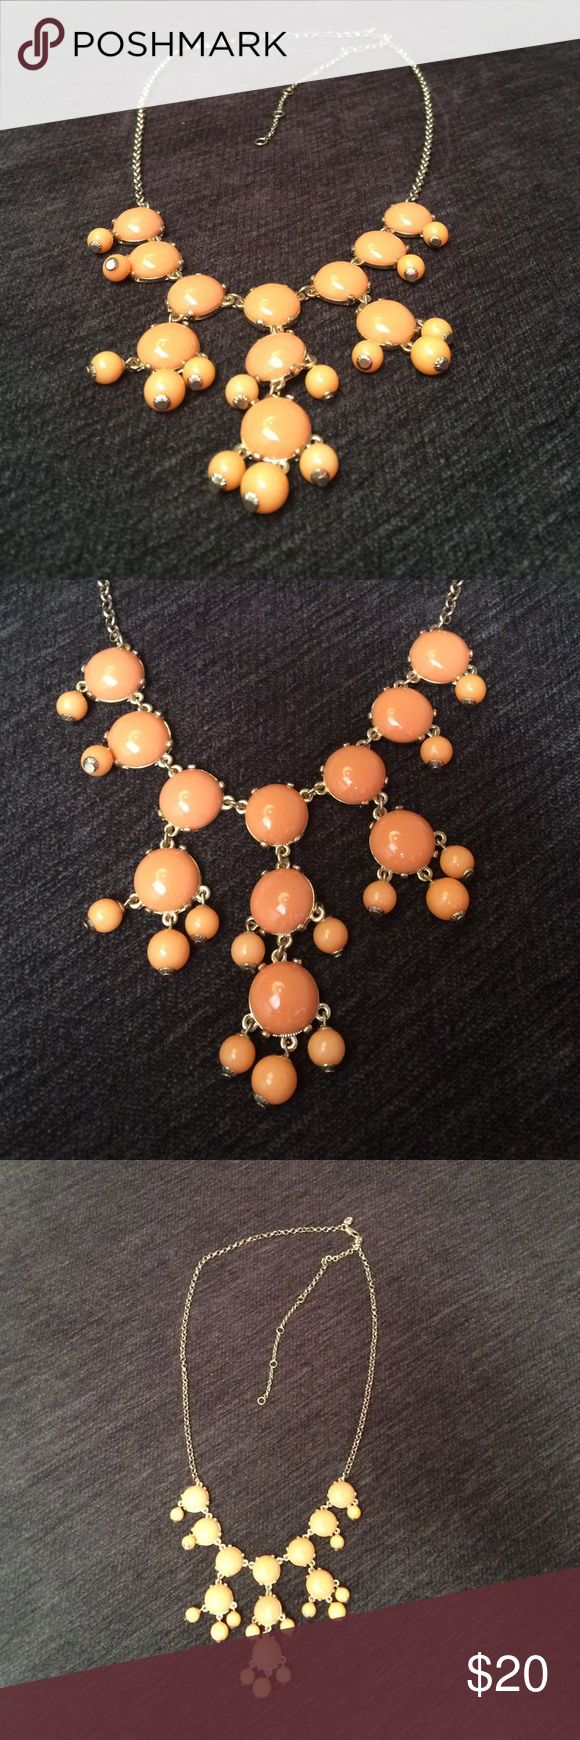 """JCrew Adjustable peach bubble necklace up to 31"""". JCrew Adjustable peach bubble necklace extends up to 31"""".  Gold in color. Costume jewelry. J. Crew Jewelry Necklaces"""